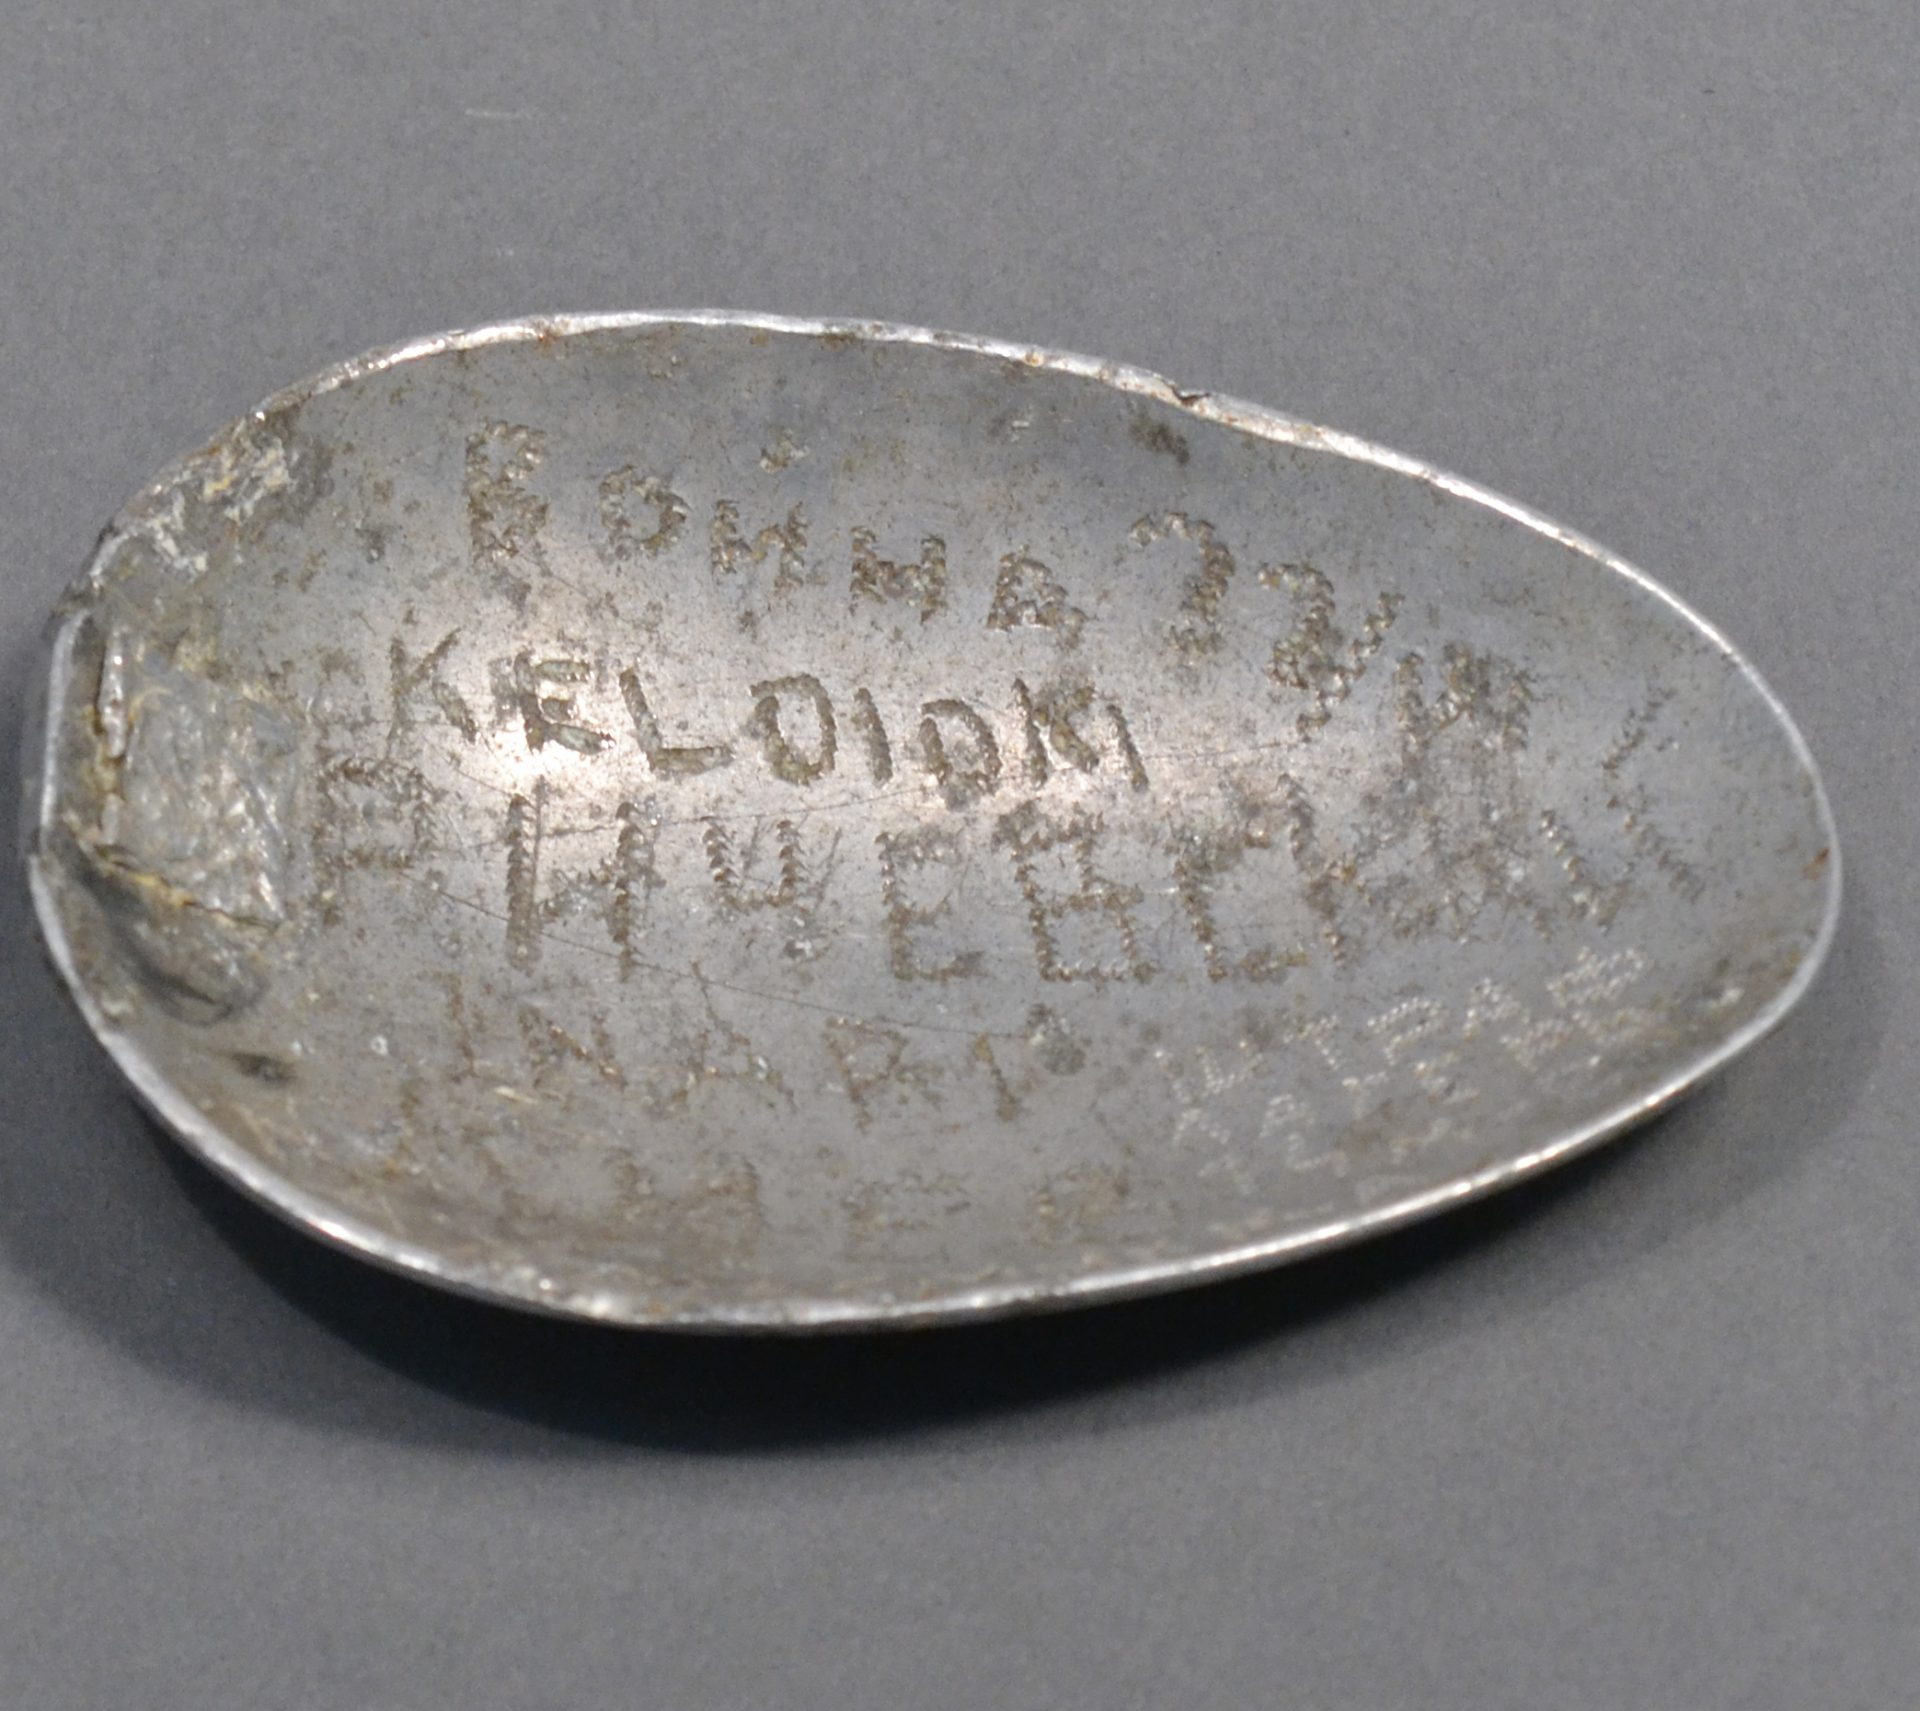 Ilya Krishevsky engraved inscriptions on this spoon, which is missing a handle.